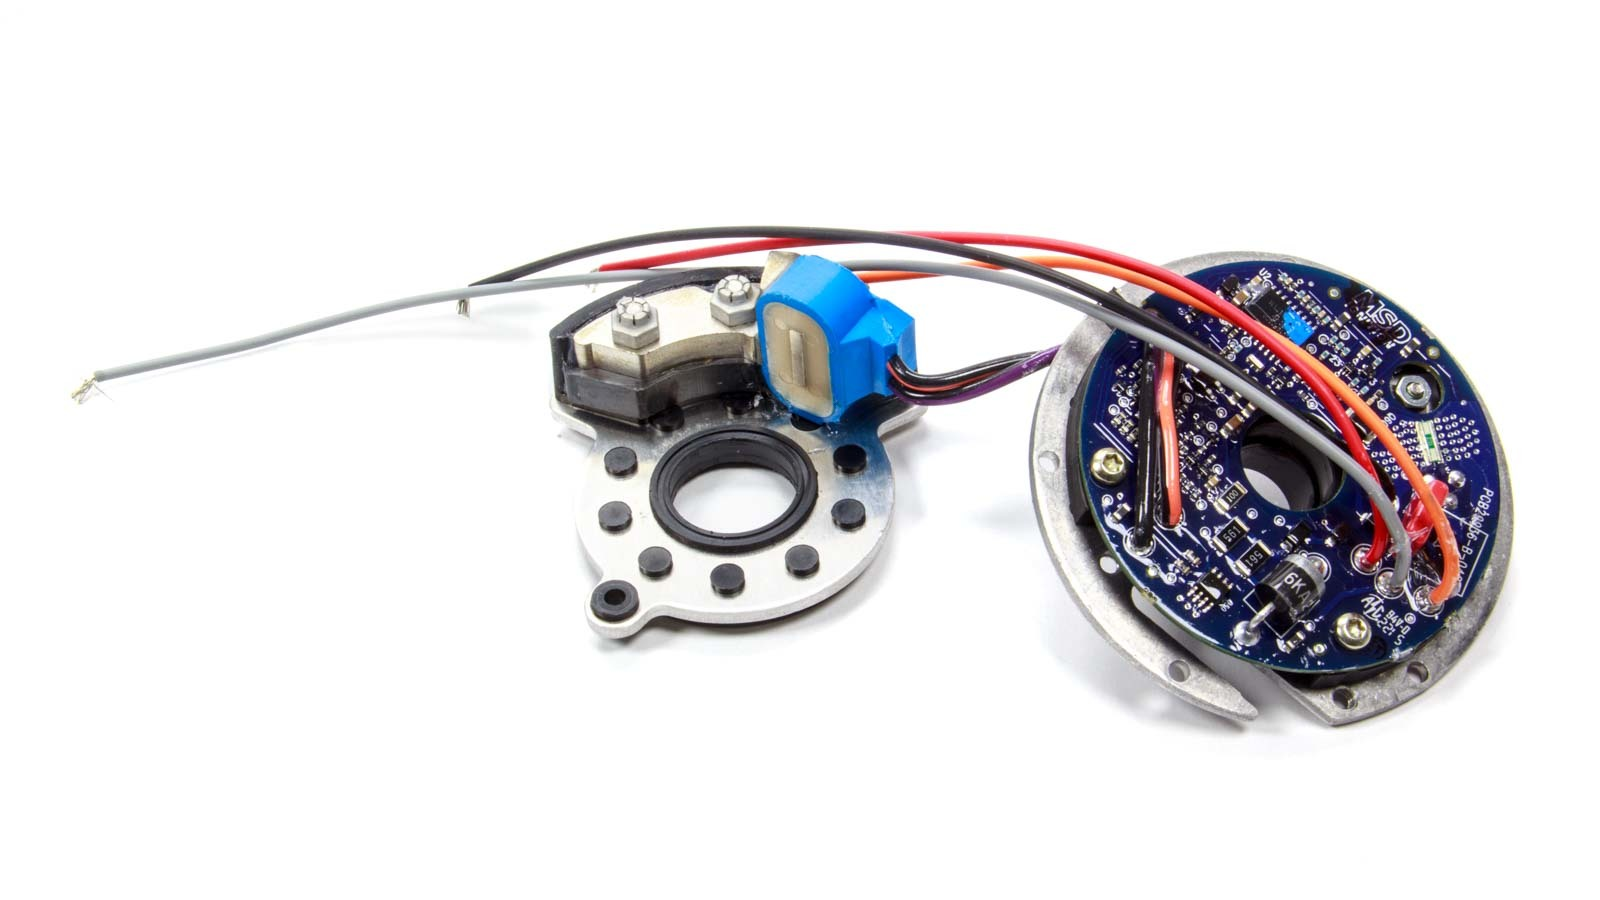 MSD Ignition ASY19970 Distributor Circuit Board, Pro Billet Distributor, Big Block Ford / Cleveland / Modified, Each